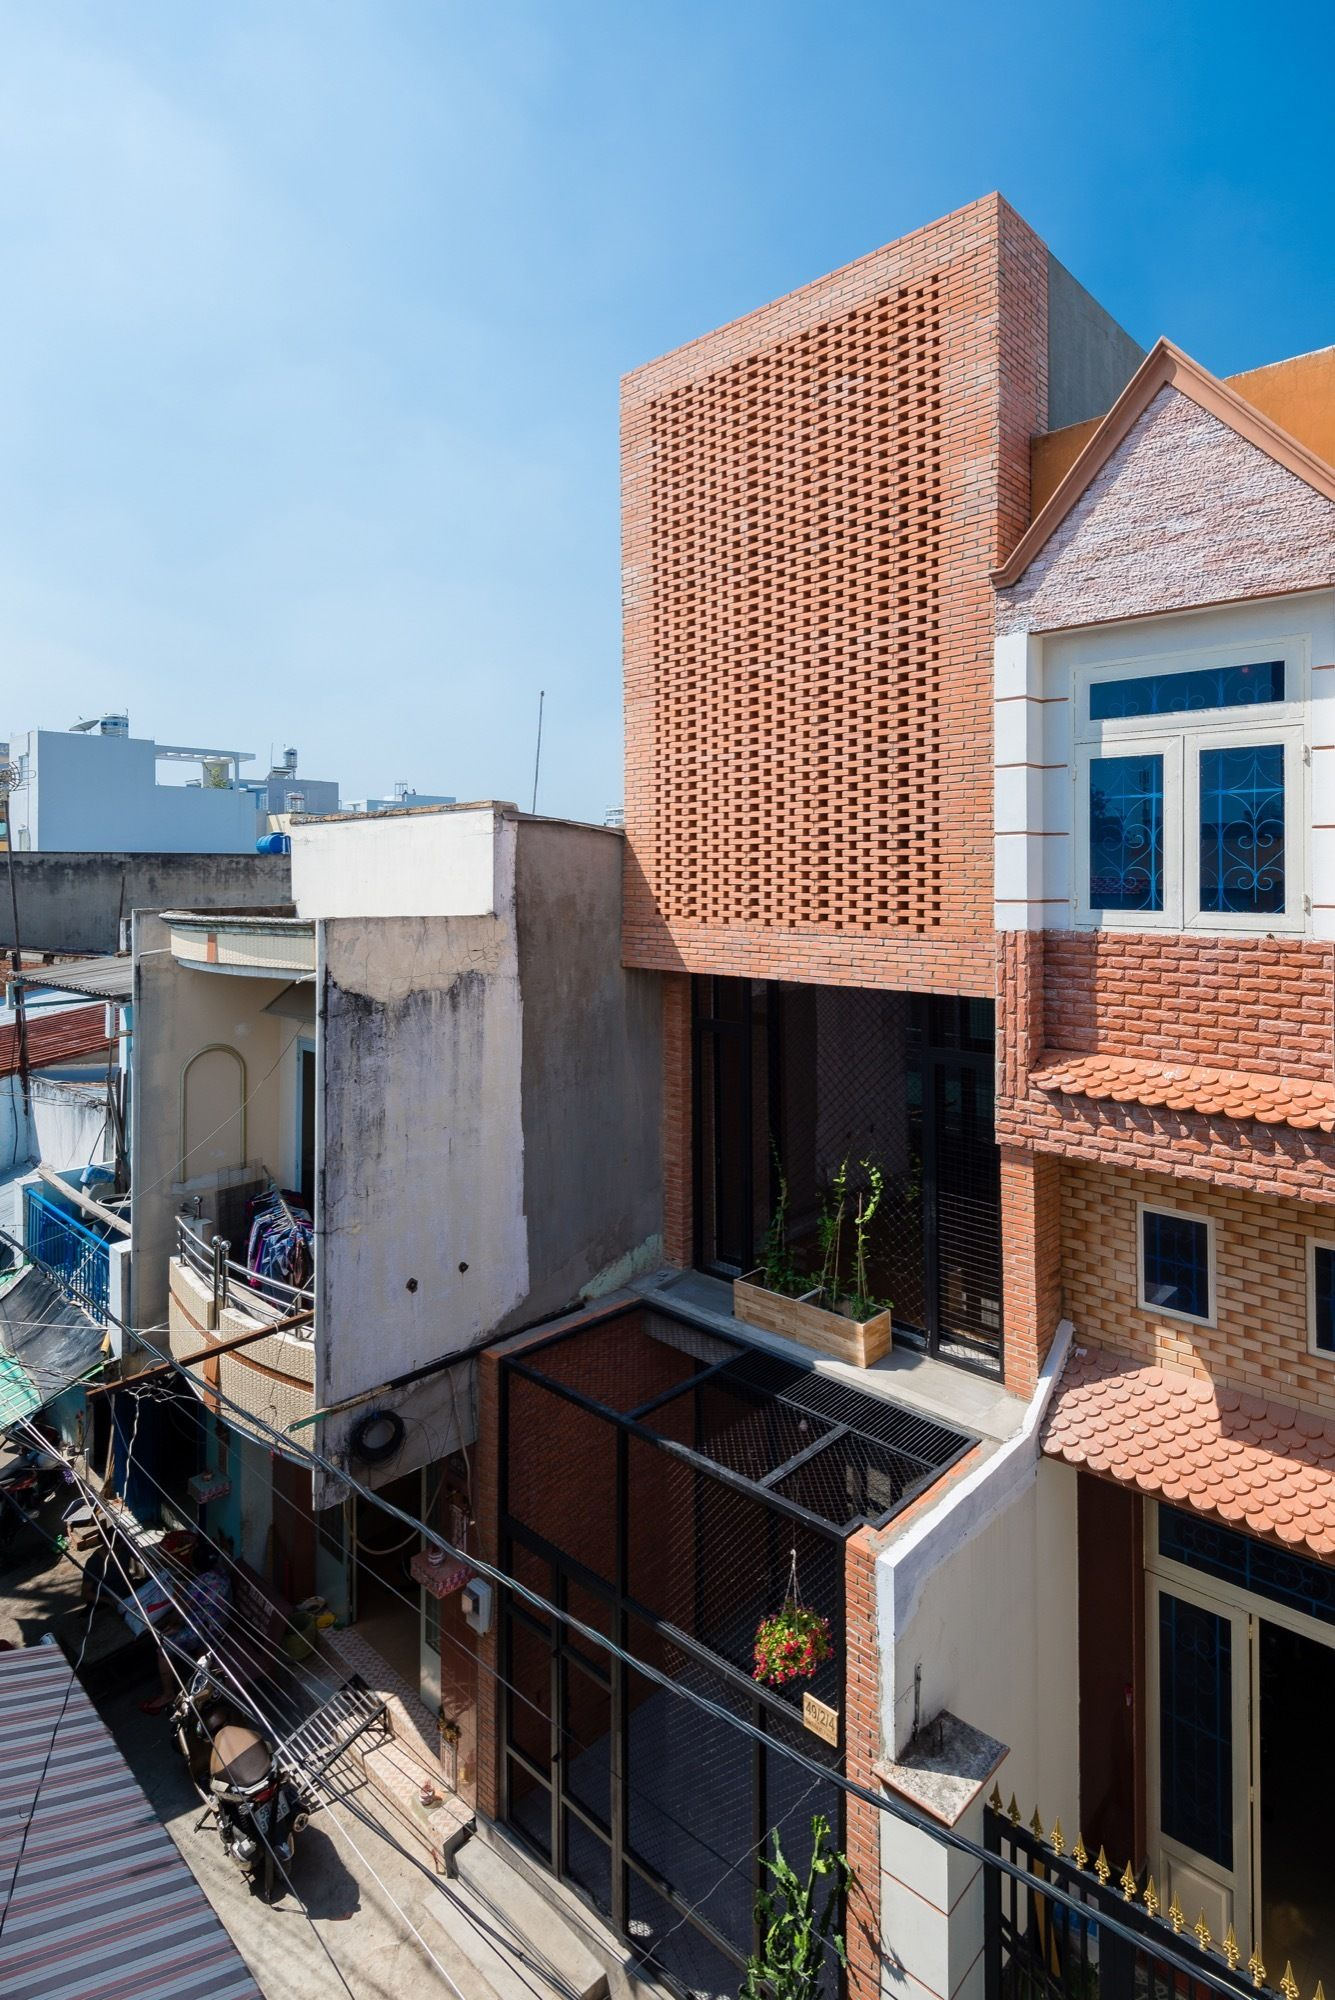 Wasp House / Tropical Space | Wasp, Spaces and House